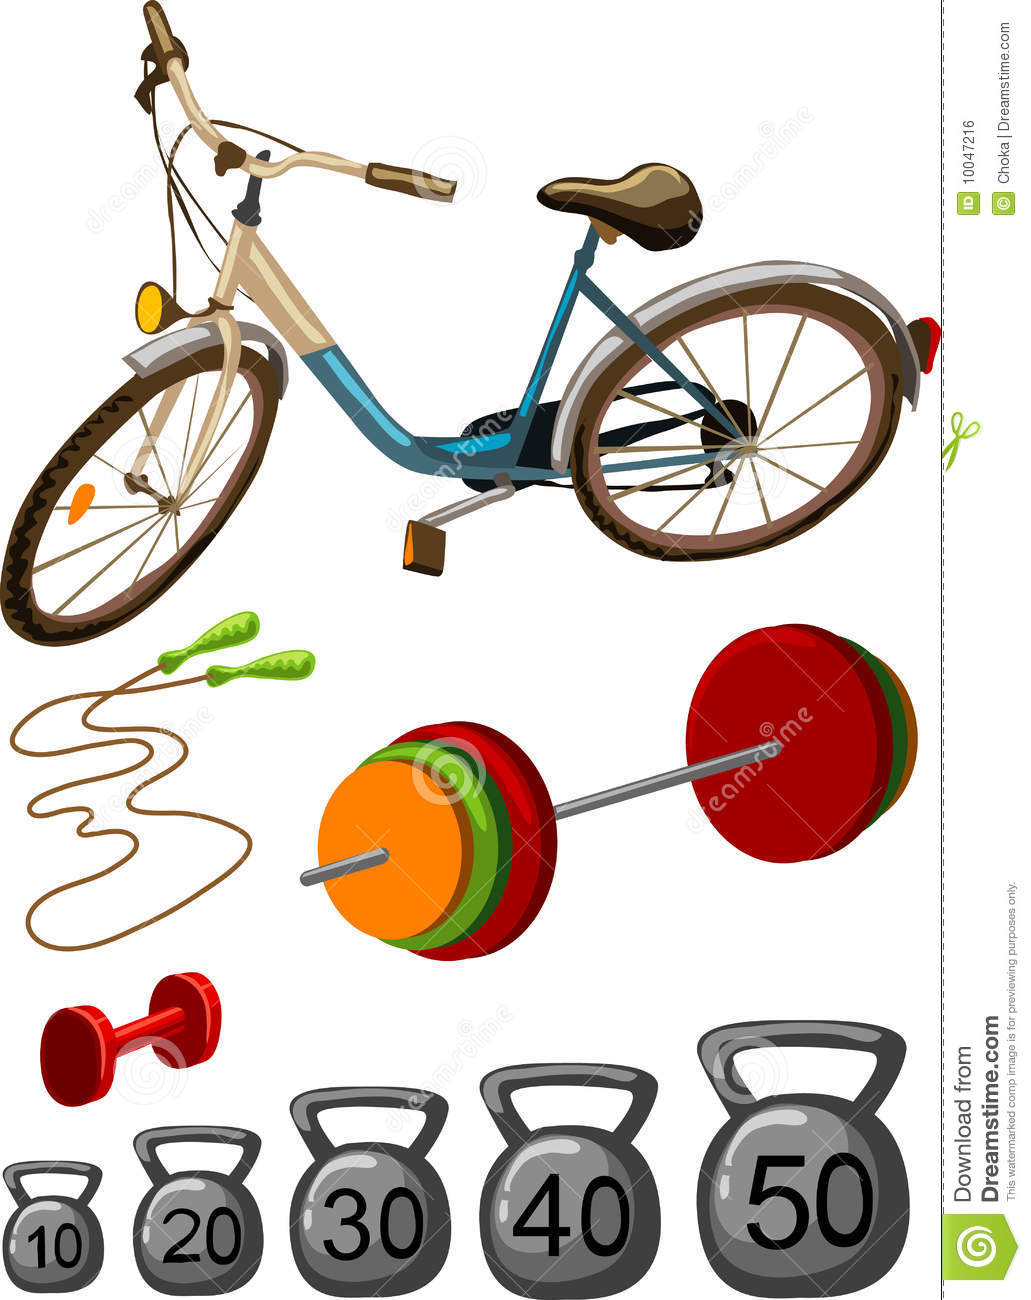 Work out equipment clipart clip black and white Gym Equipment Clipart - Clipart Kid clip black and white